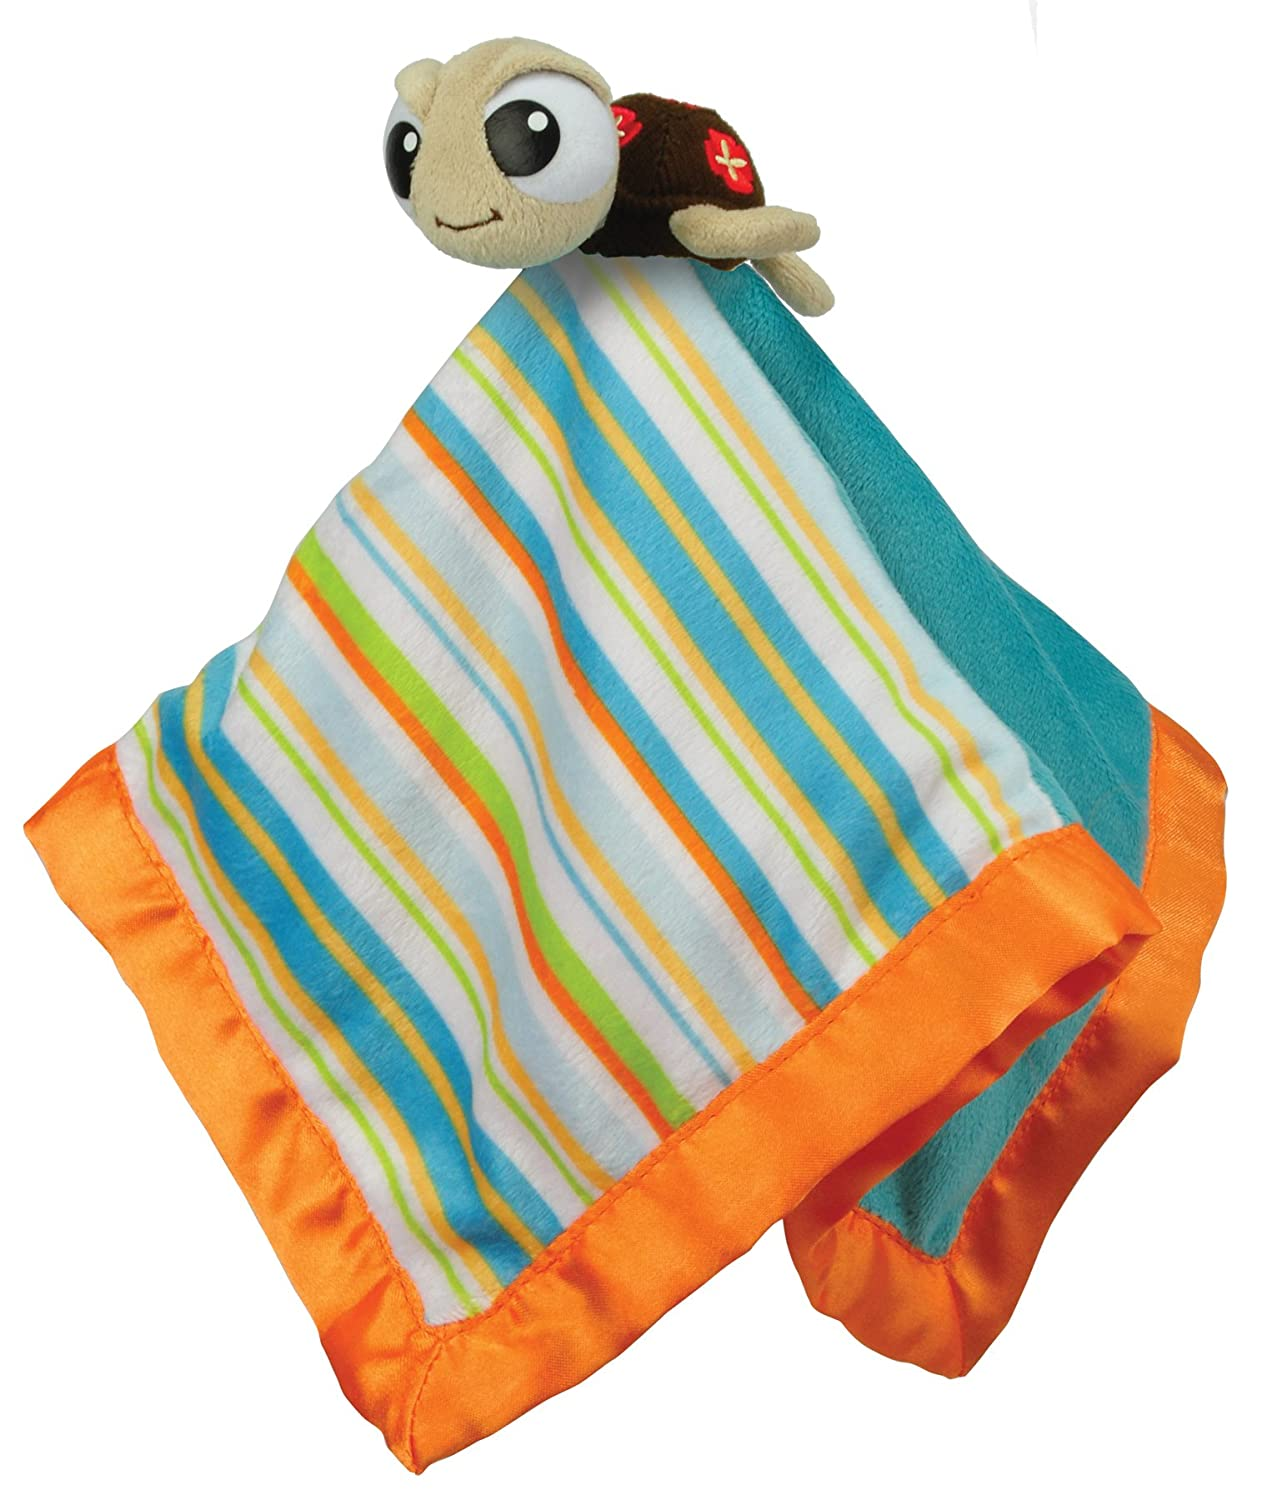 Finding Nemo Toddler Bedding 28 Images Finding Nemo